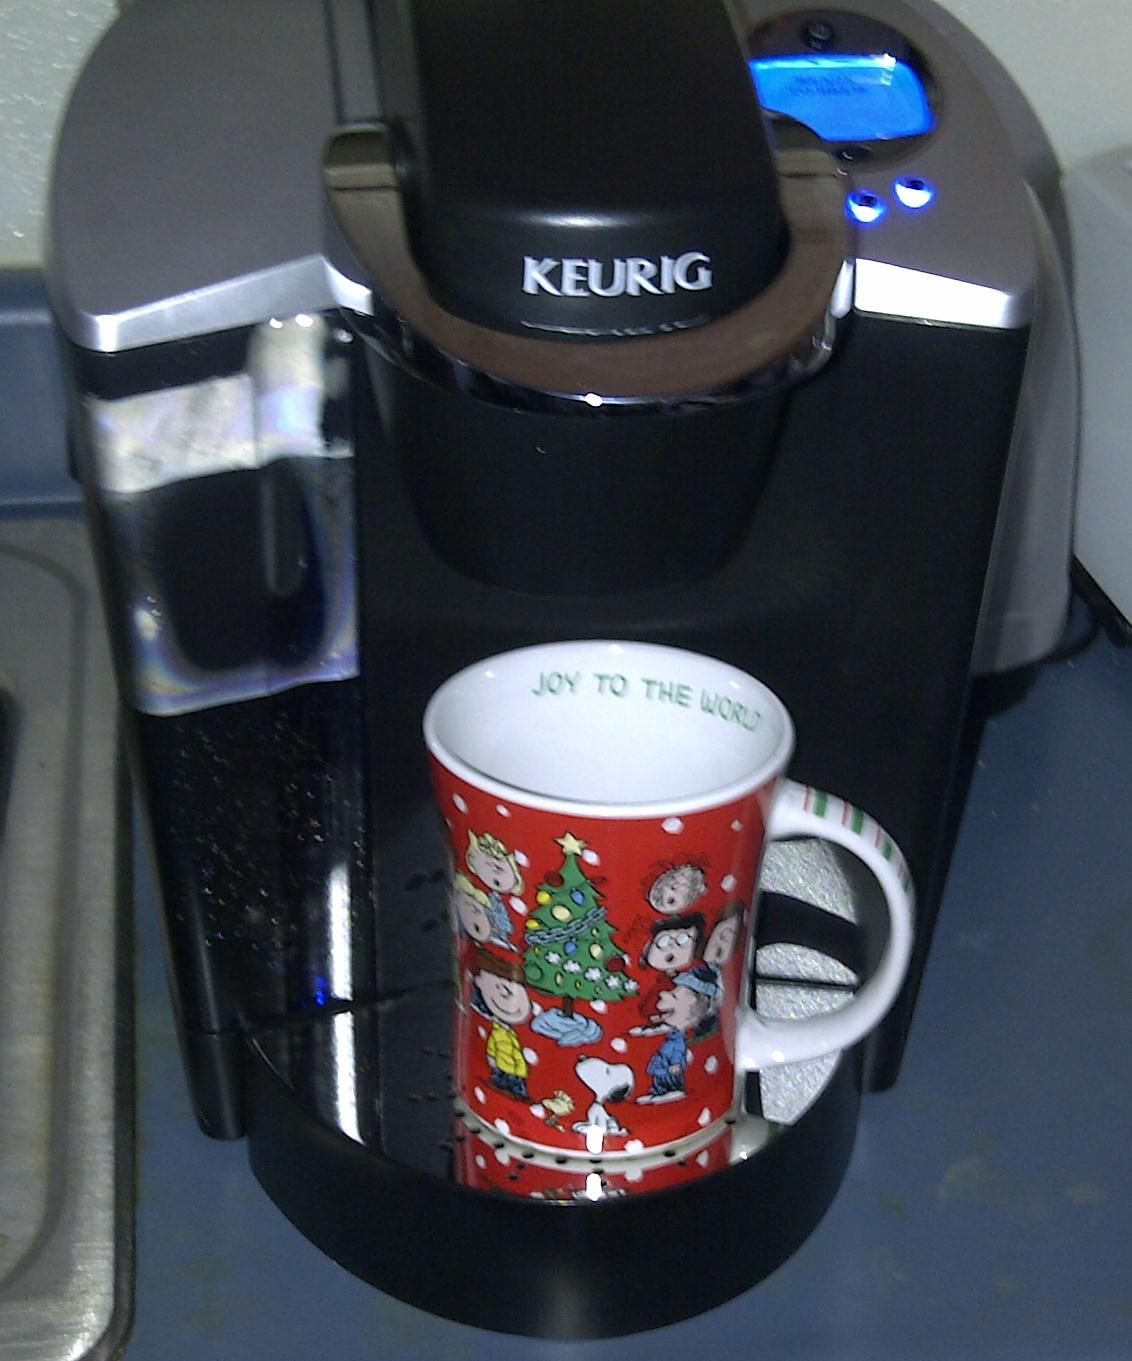 keurig b60 special edition manual